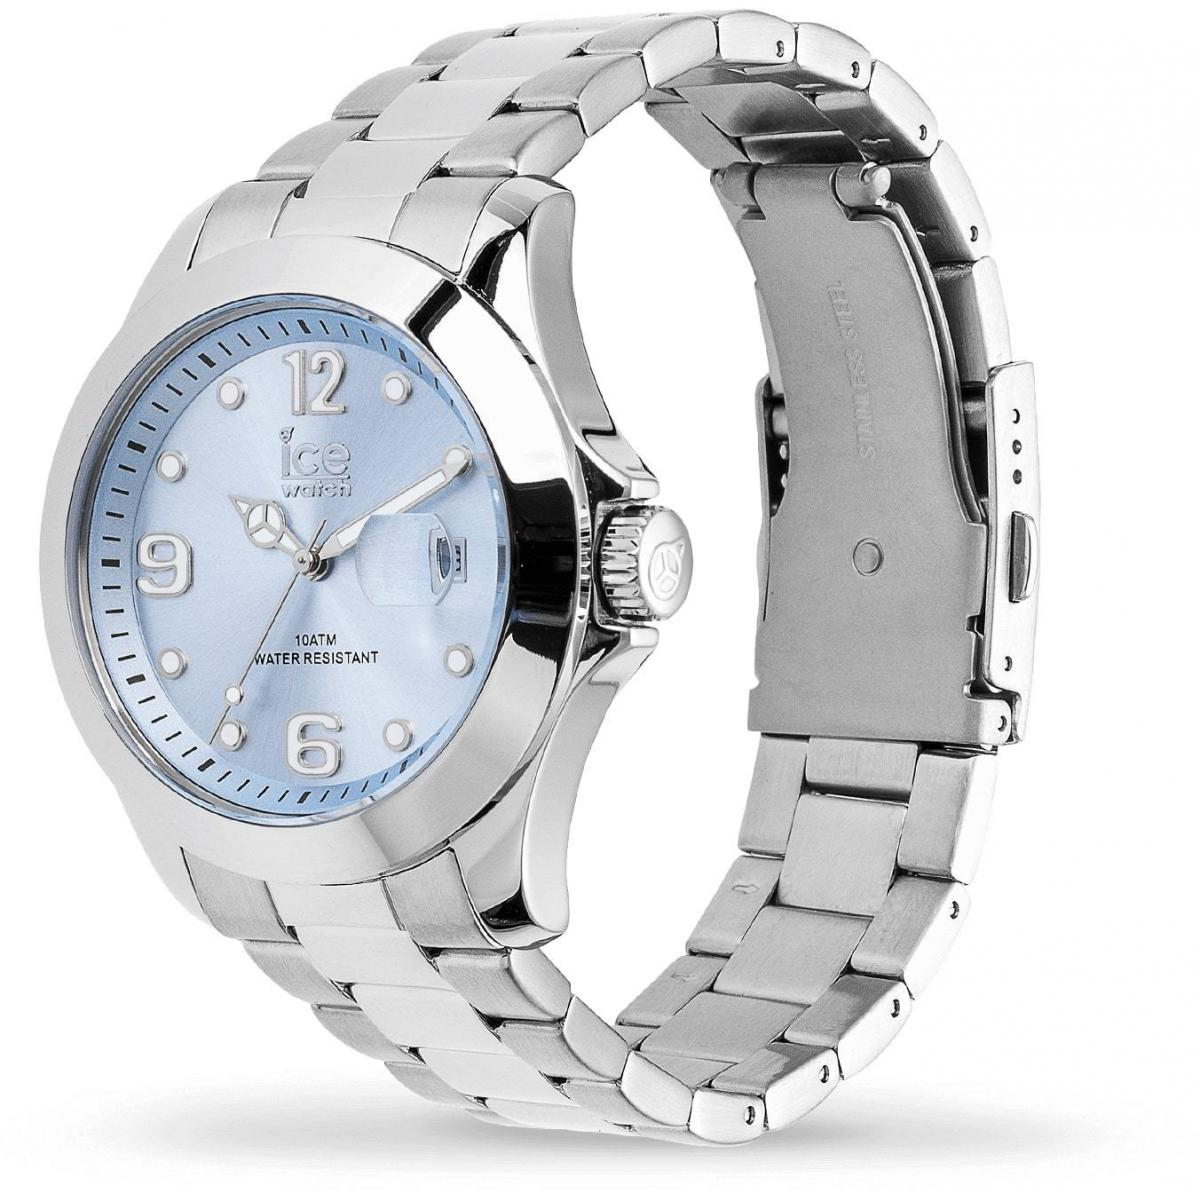 Montre Femme Ice Watch Argent 016891